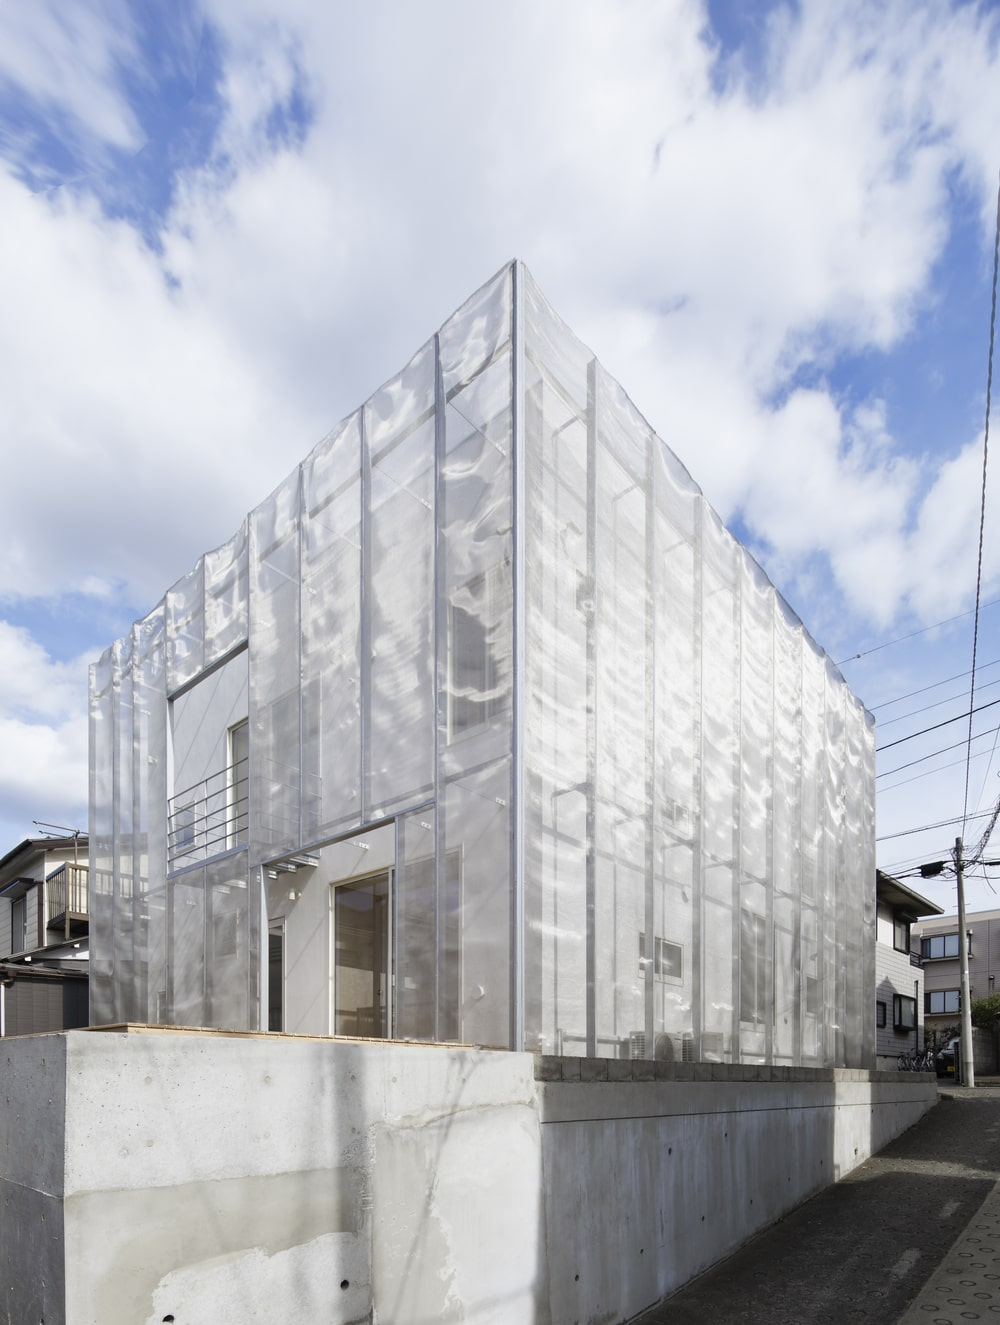 This is a full view of the house that has a unique look to it thanks to the see-thru screen-like material on the outer wall of the house.